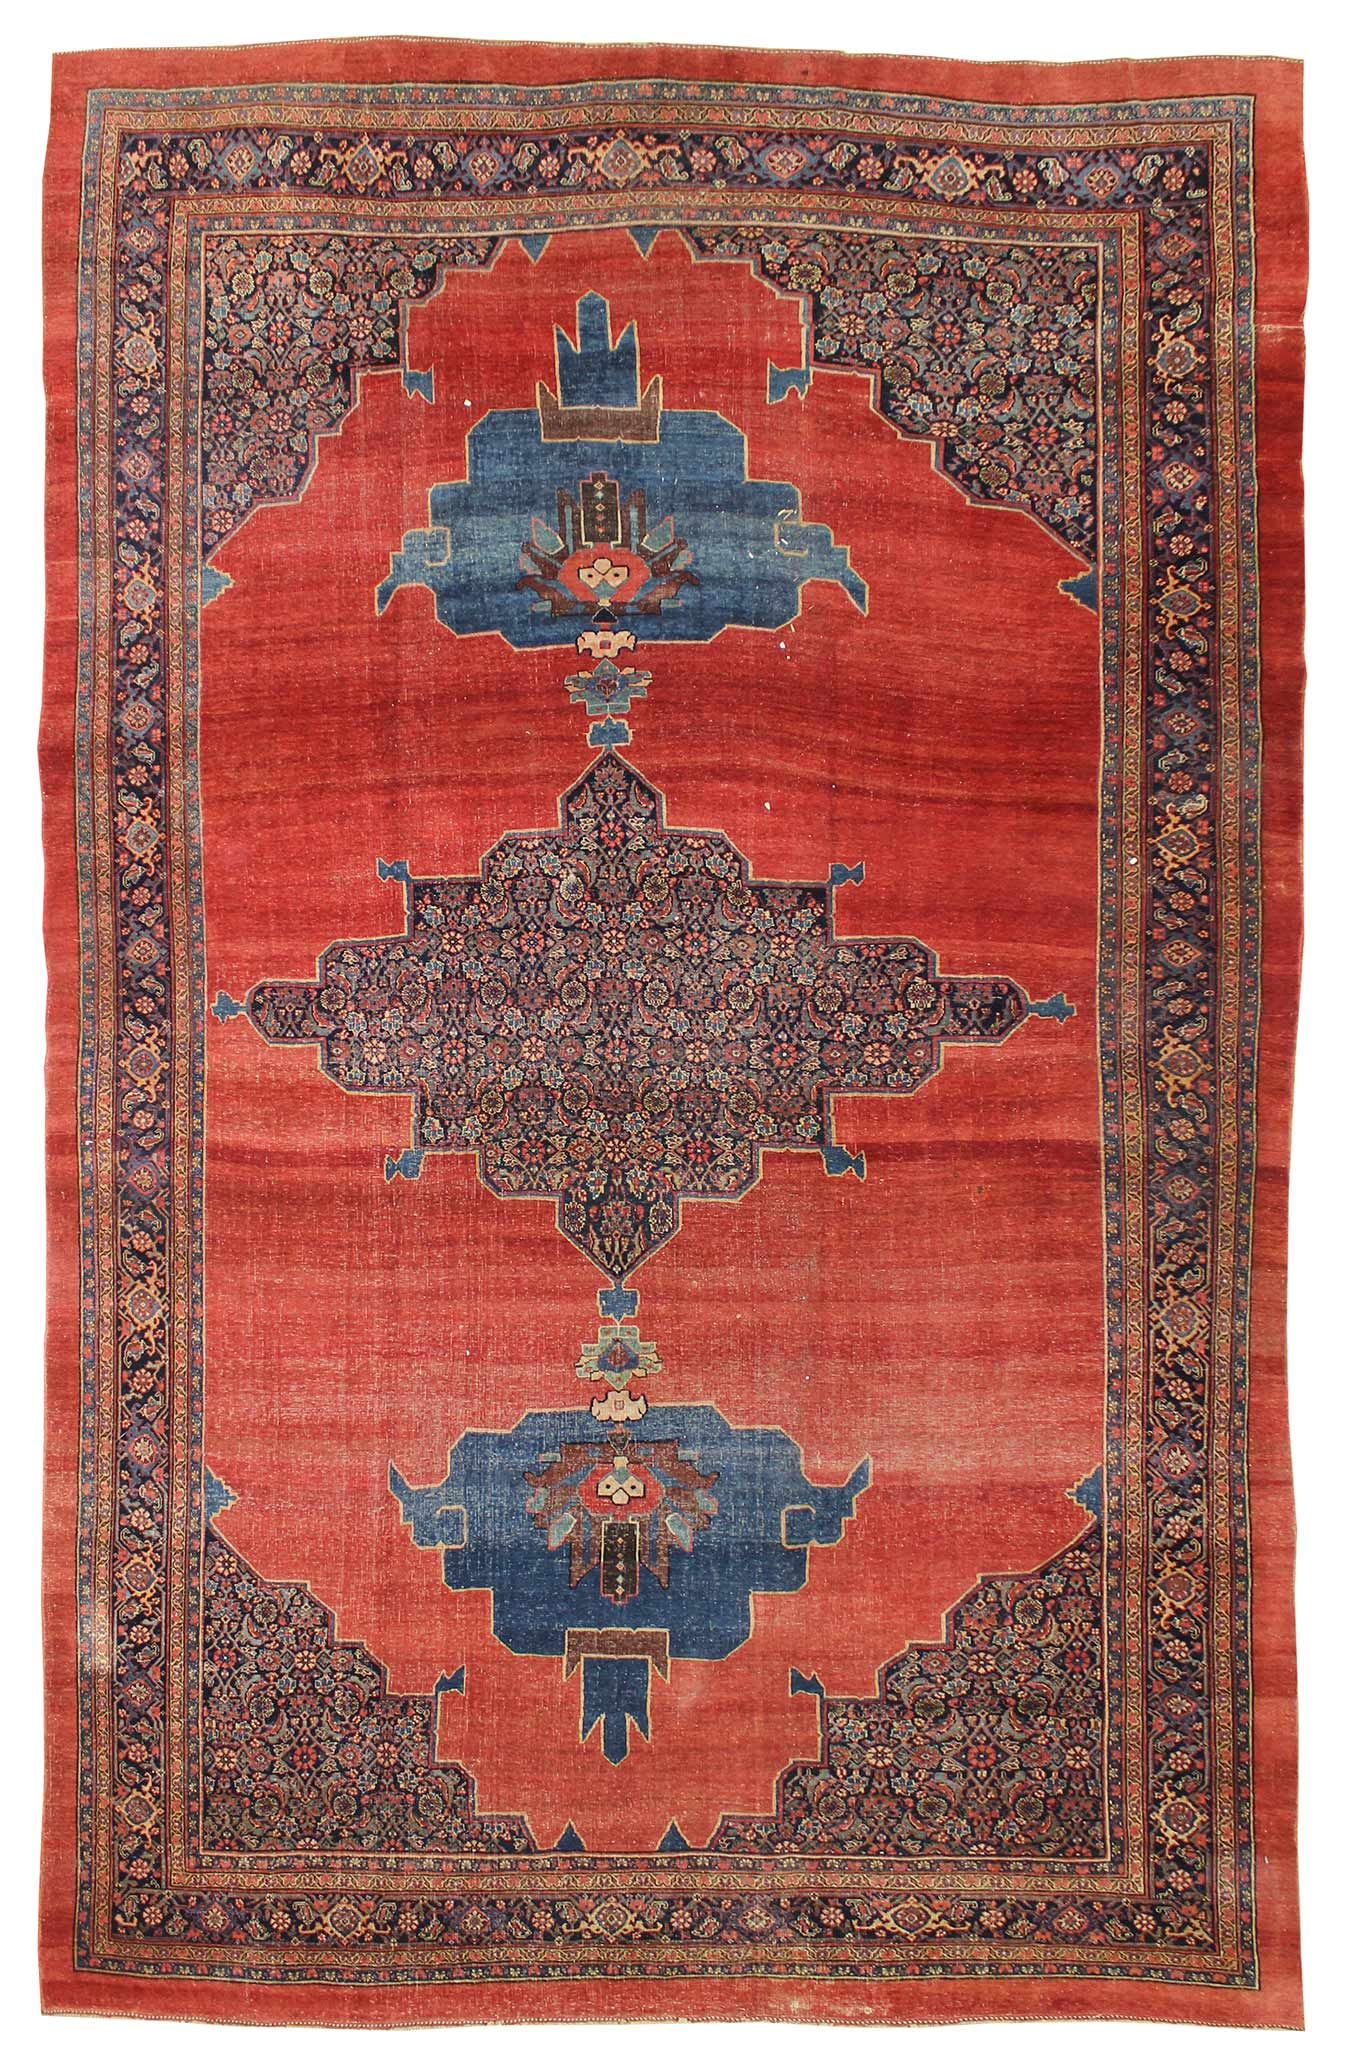 Antique Bijar Rugs Gallery Antique Bijar Rug Hand Knotted In Persia Size 10 Feet 6 Inch Es X 17 Feet 4 Inch Es Rugs Kilim Carpets Rug Gallery